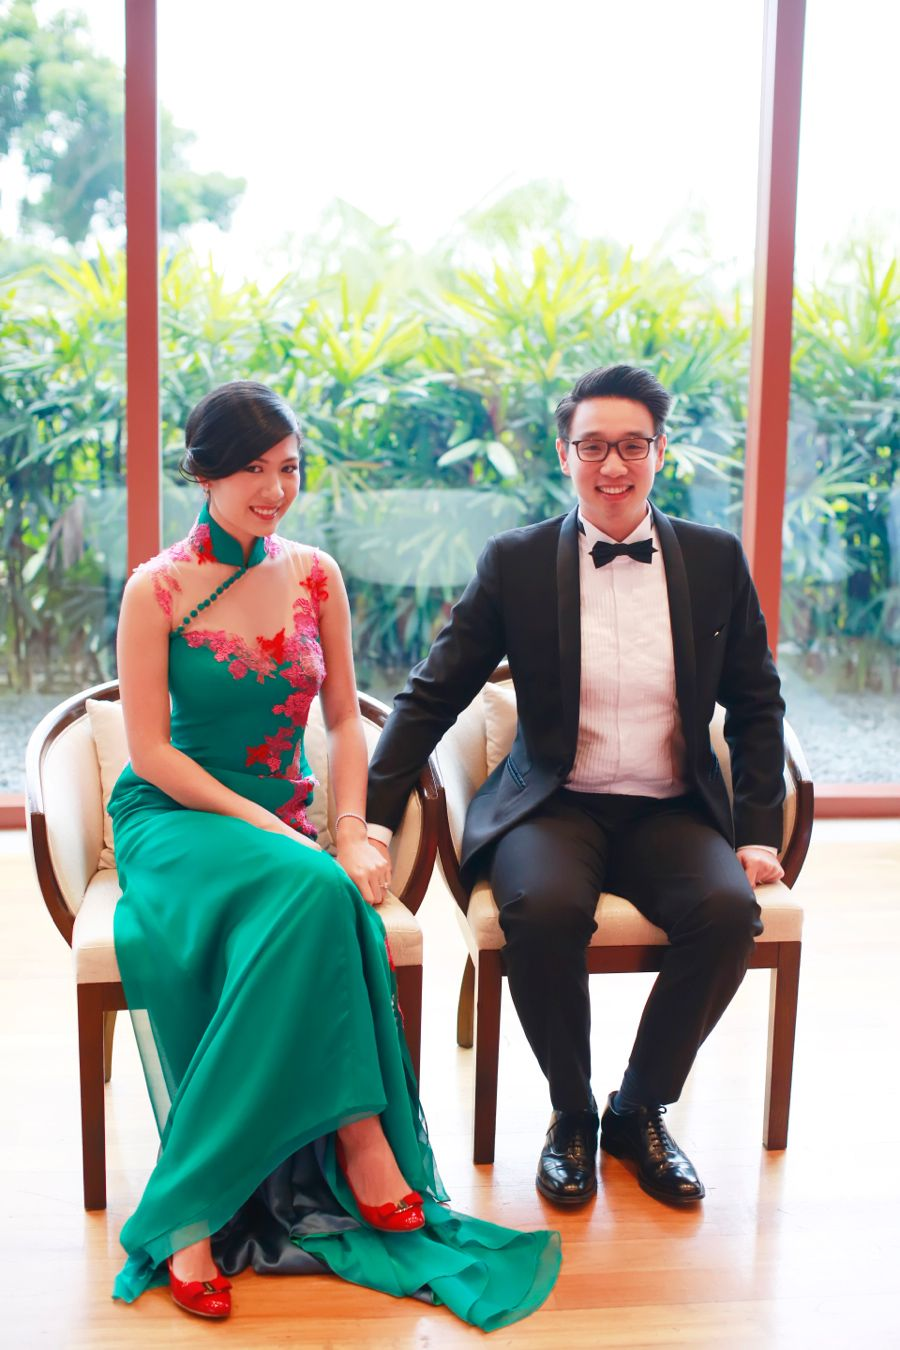 Green wedding cheongsam by Singapore-based Renee L | Handcrafted Wedding with a Paper Flower Backdrop: Brian + Tiffany